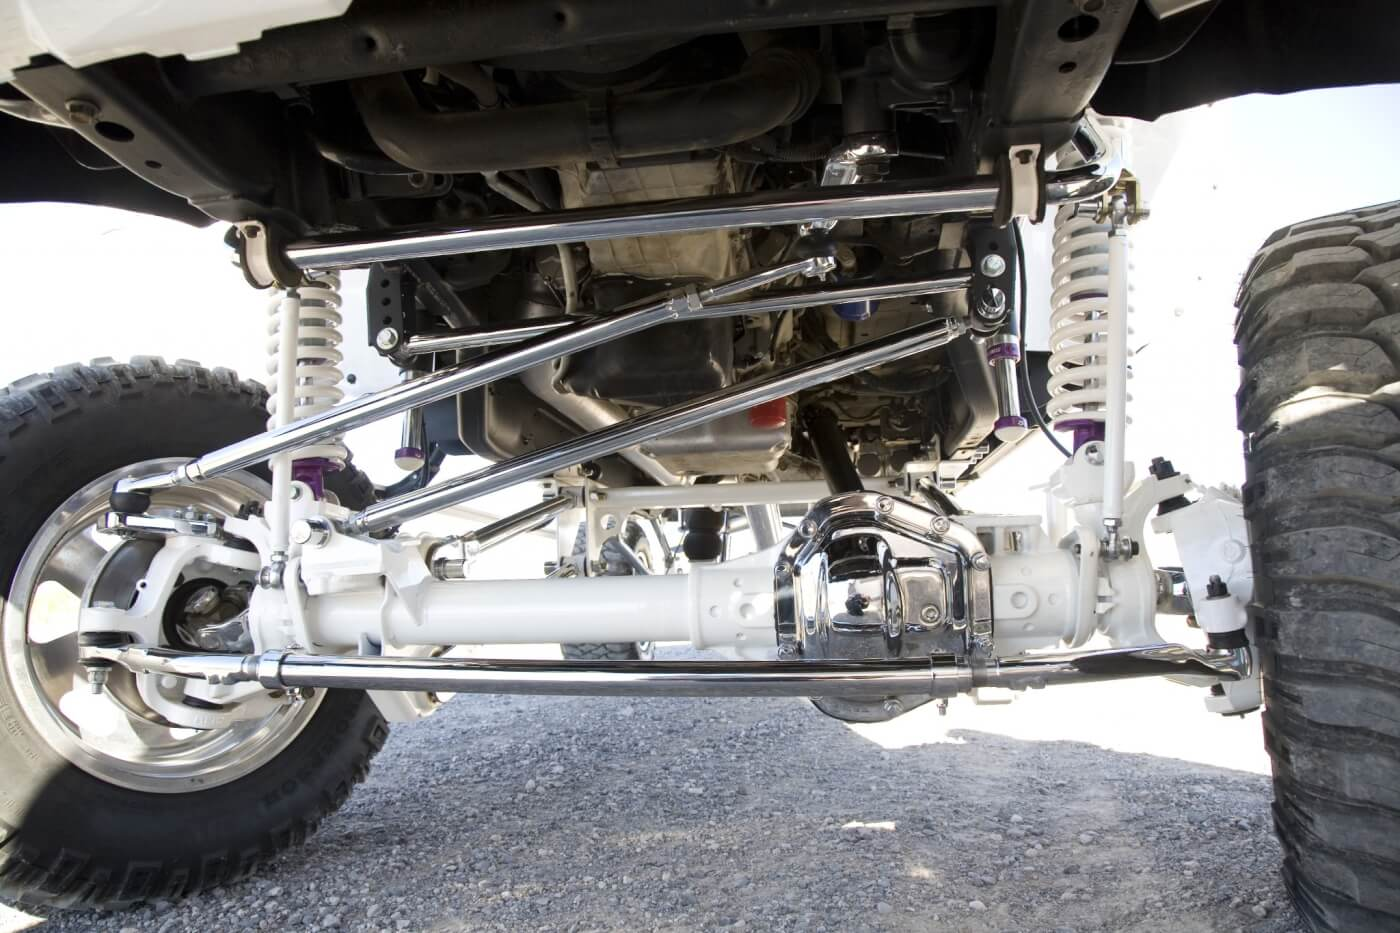 Yep, that's a Dana 60 straight axle under the front end. It's made possible due to the new TCS suspension. The 7-inch TCS Suspension four-link kit is said to be 100-percent bolt-on, with no welding or cutting required. As you can see, the sway bar, tie-rod and steering links were chrome plated. The new front axle and some other components were painted bright white.